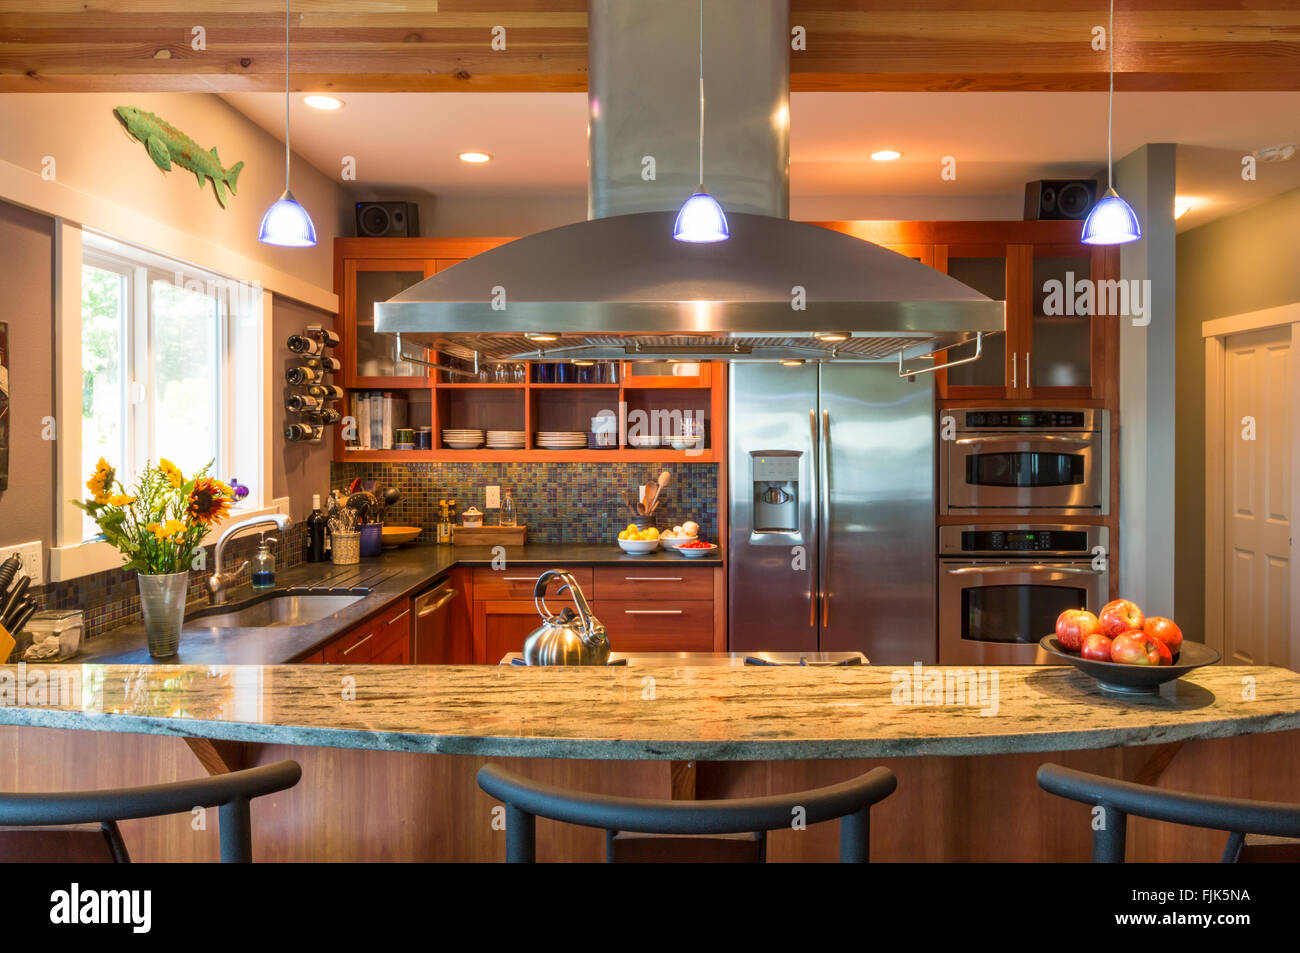 Breakfast bar in contemporary upscale home kitchen with granite countertops, stainless steel appliances and accent - Stock Image